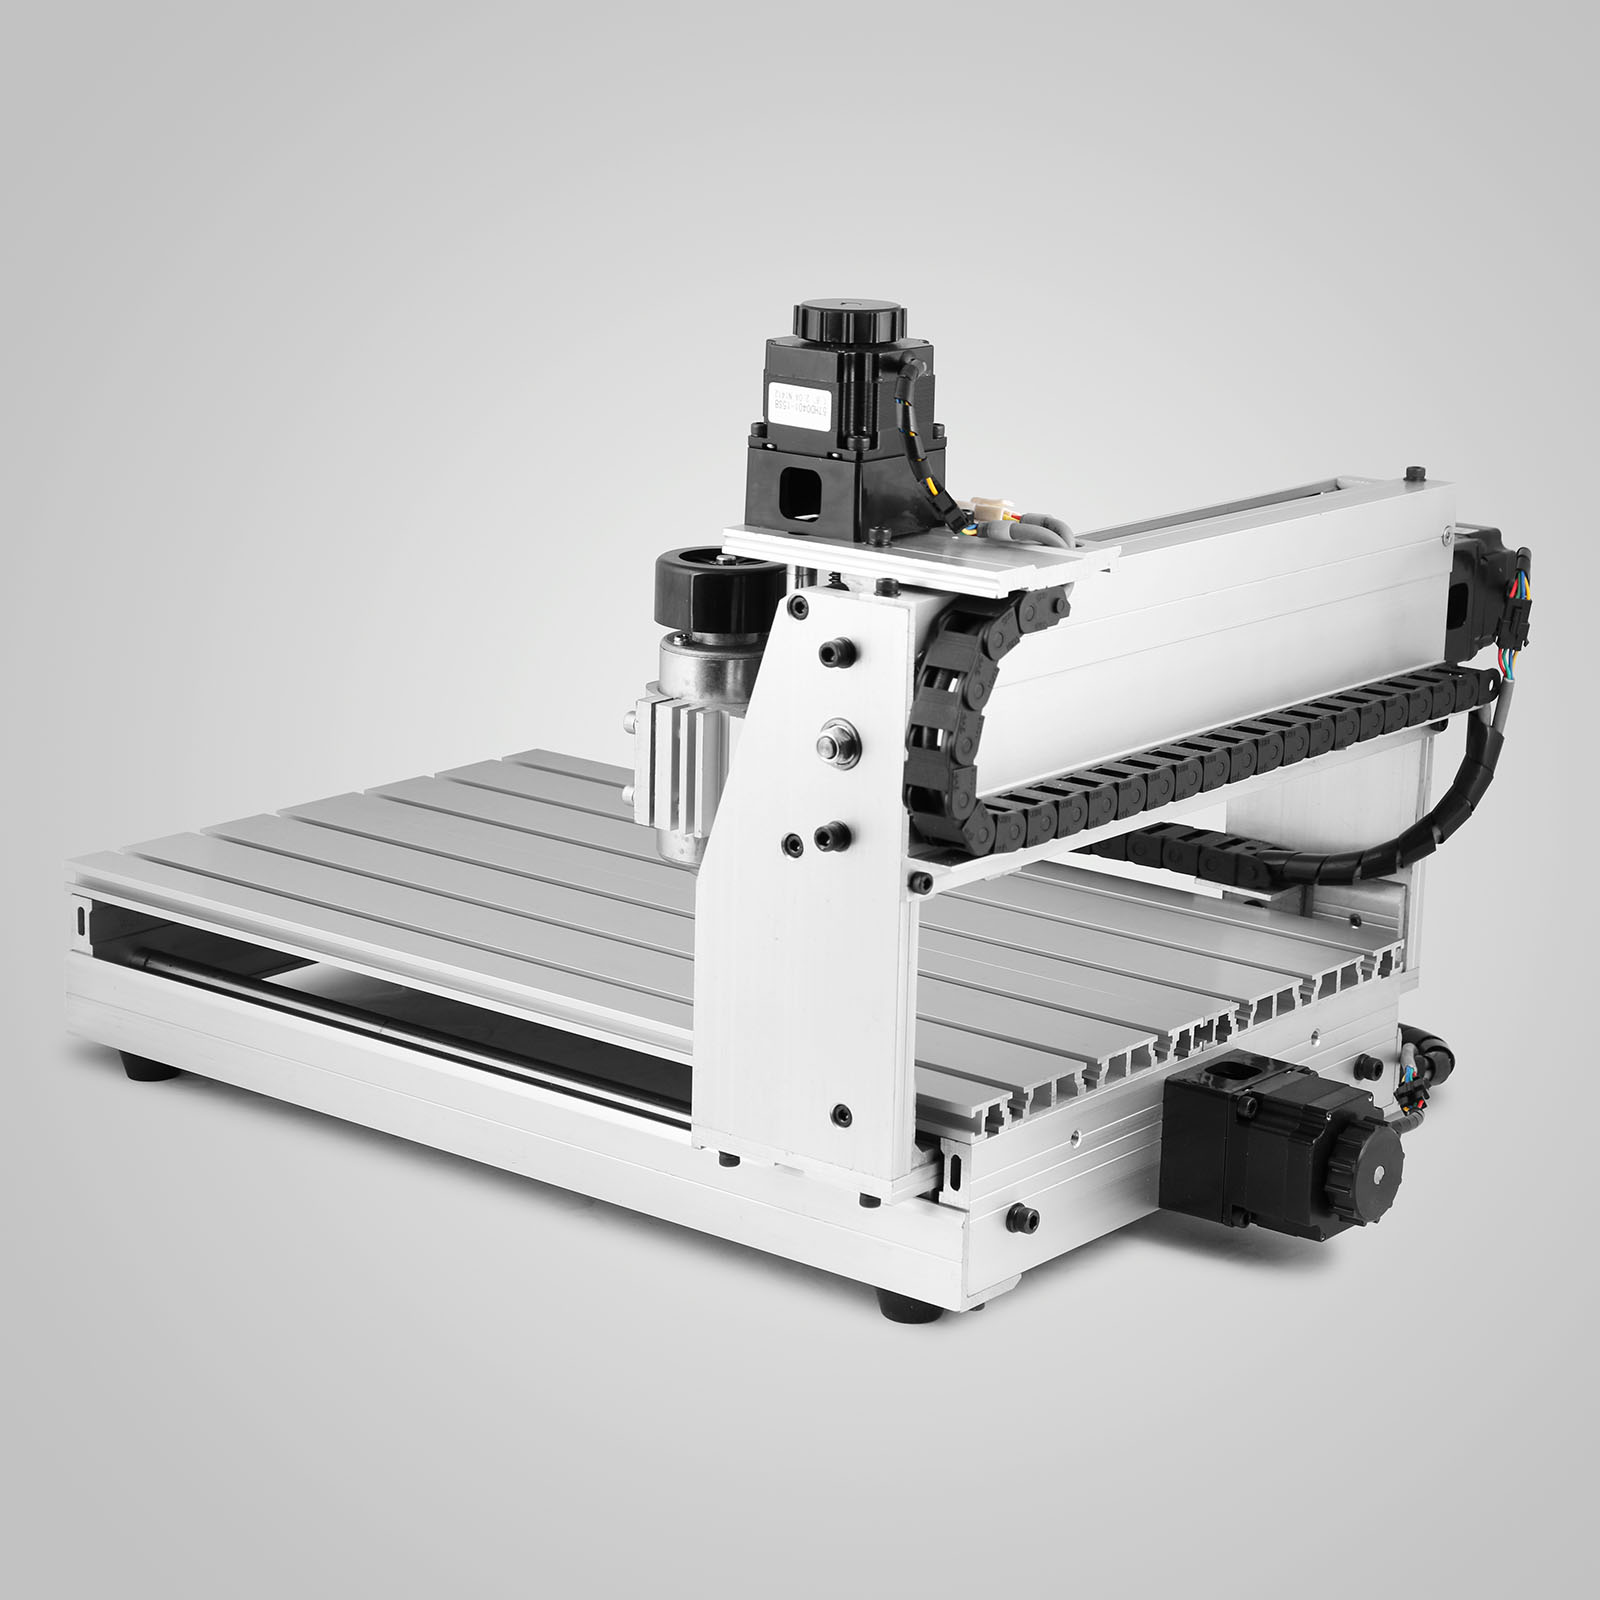 hobby lasergravierer mini cnc router fr se maschine. Black Bedroom Furniture Sets. Home Design Ideas